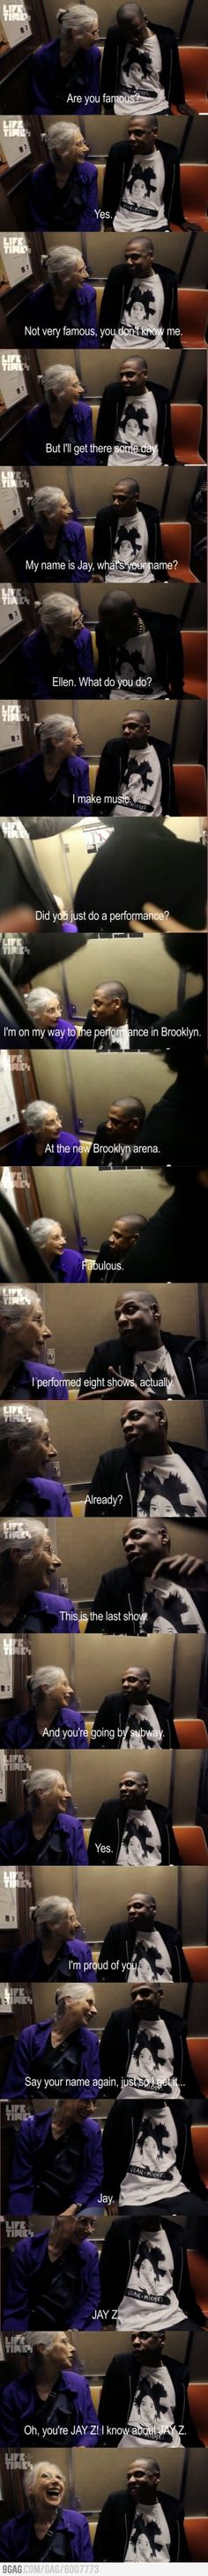 This is very cute.  I am not a fan of JayZ, but I do like how humble he is.  jay-z and old woman conversation in the subway